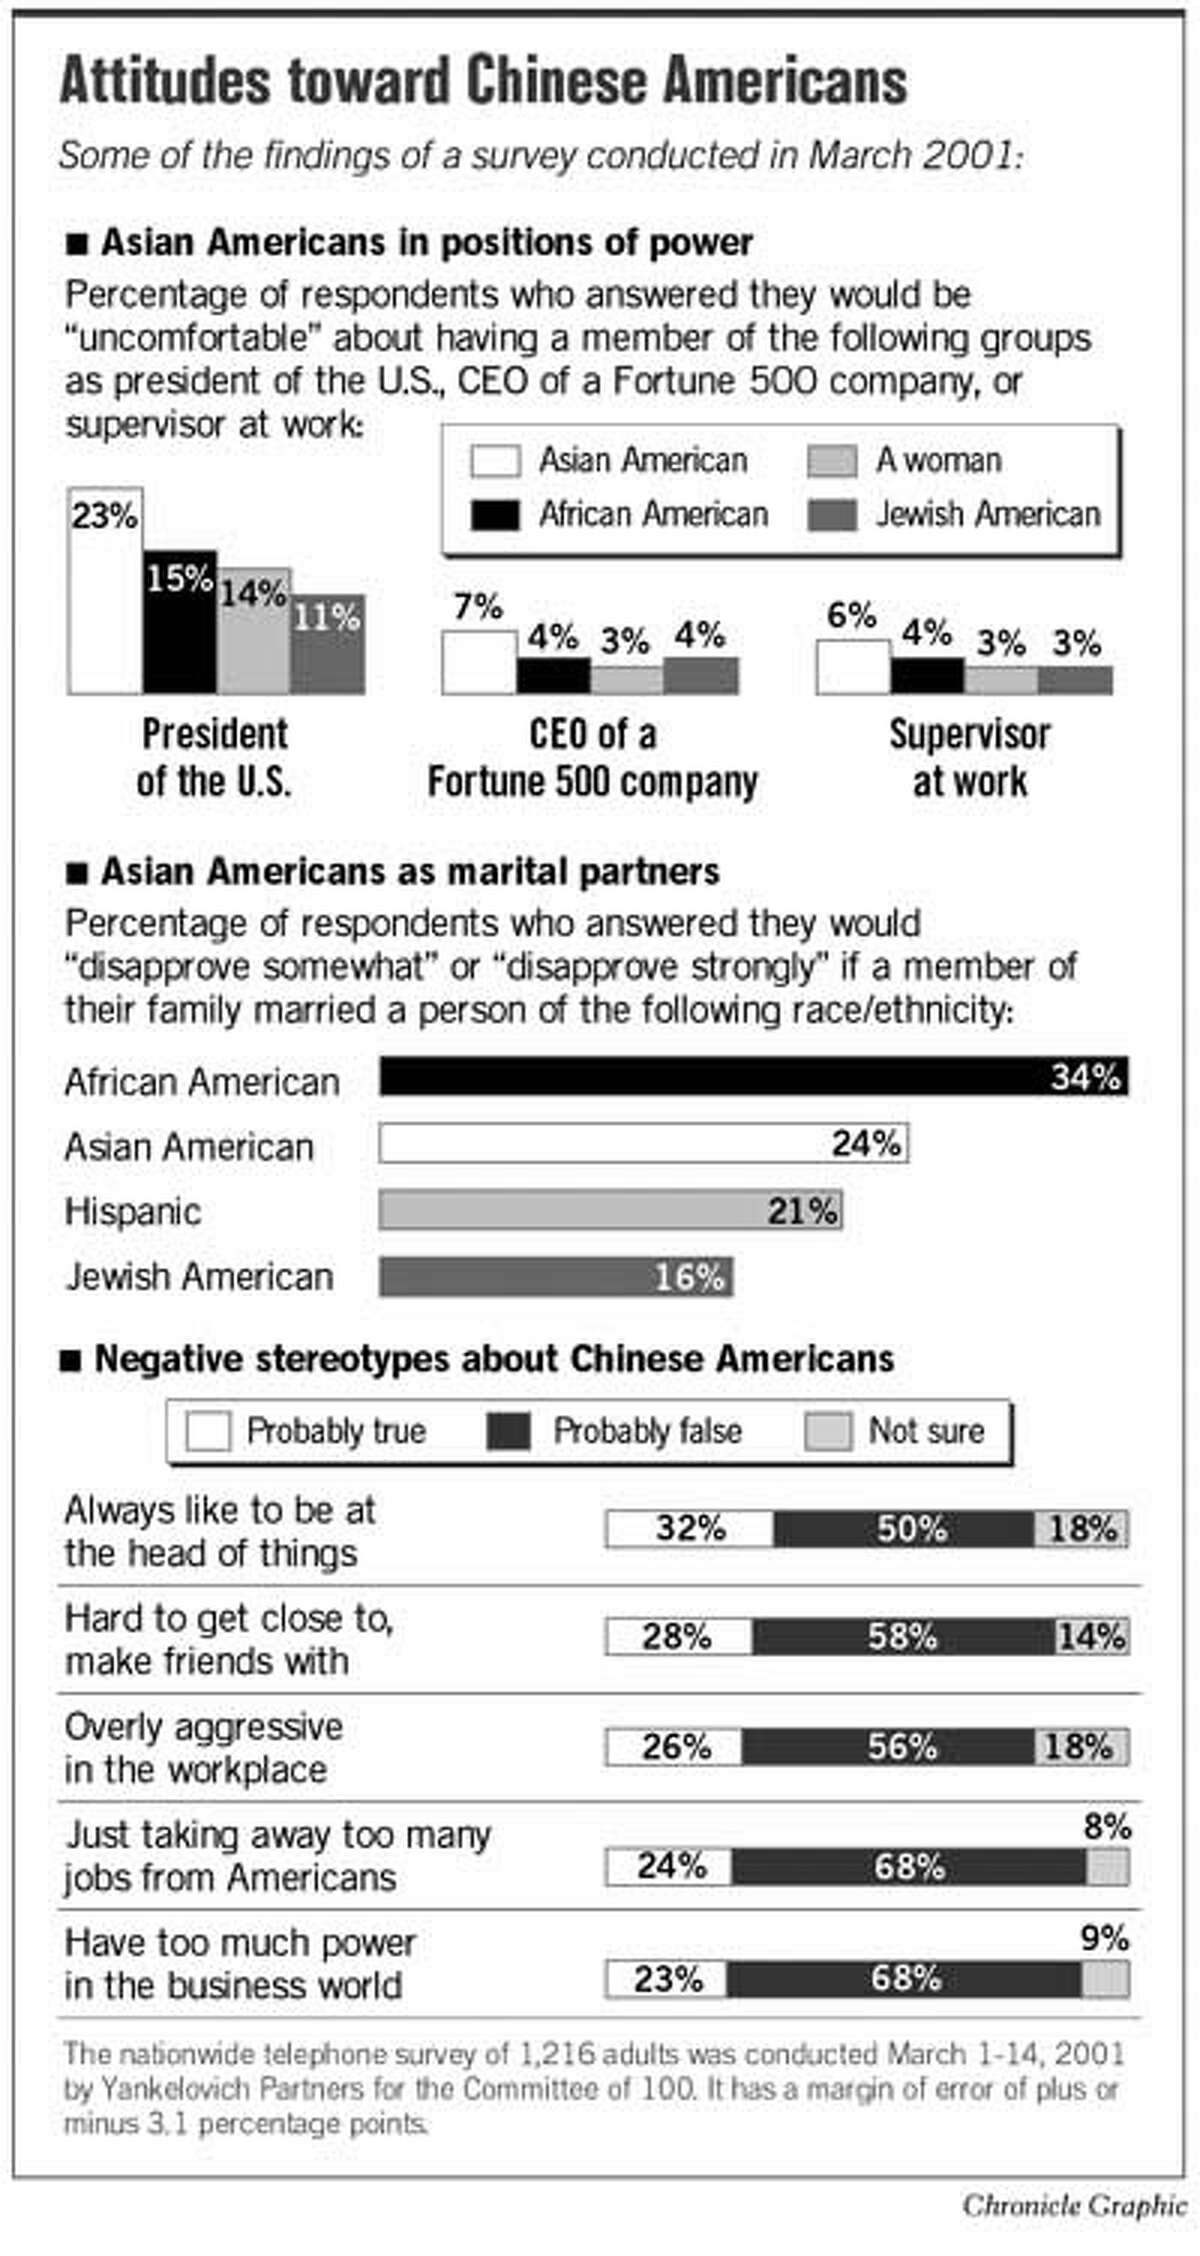 Attitudes Toward Chinese Americans. Chronicle Graphic